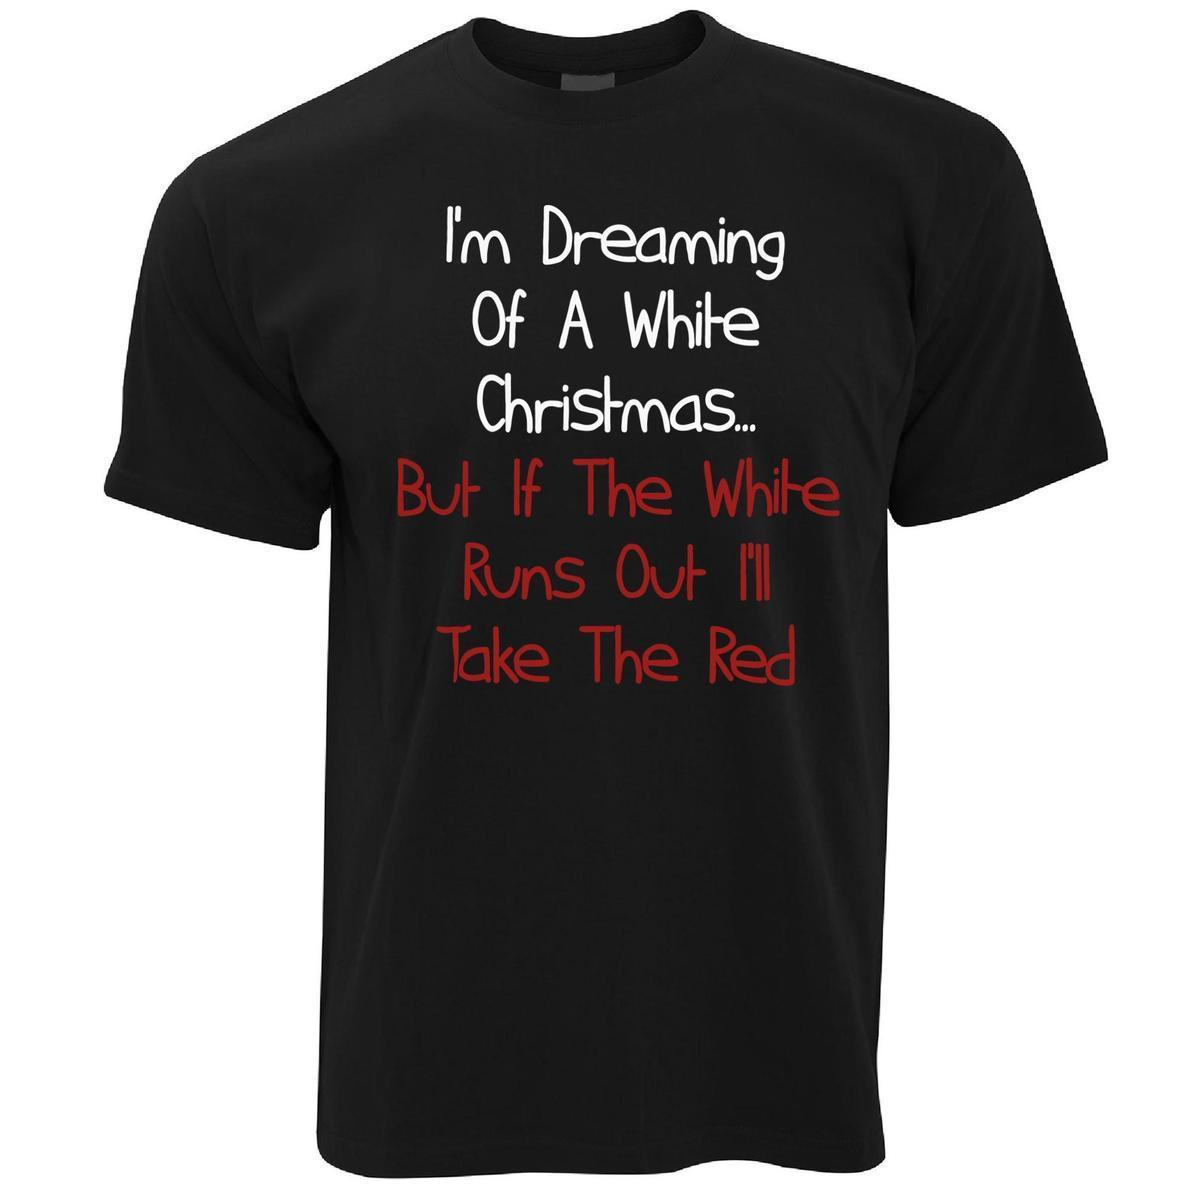 bdd5ad972 Funny Christmas Mens T Shirt Dreaming Of A White Xmas Ill Take The Red Wine Hilarious  Tee Shirts Online T Shirt Buy From Jie15, $14.67  DHgate.Com